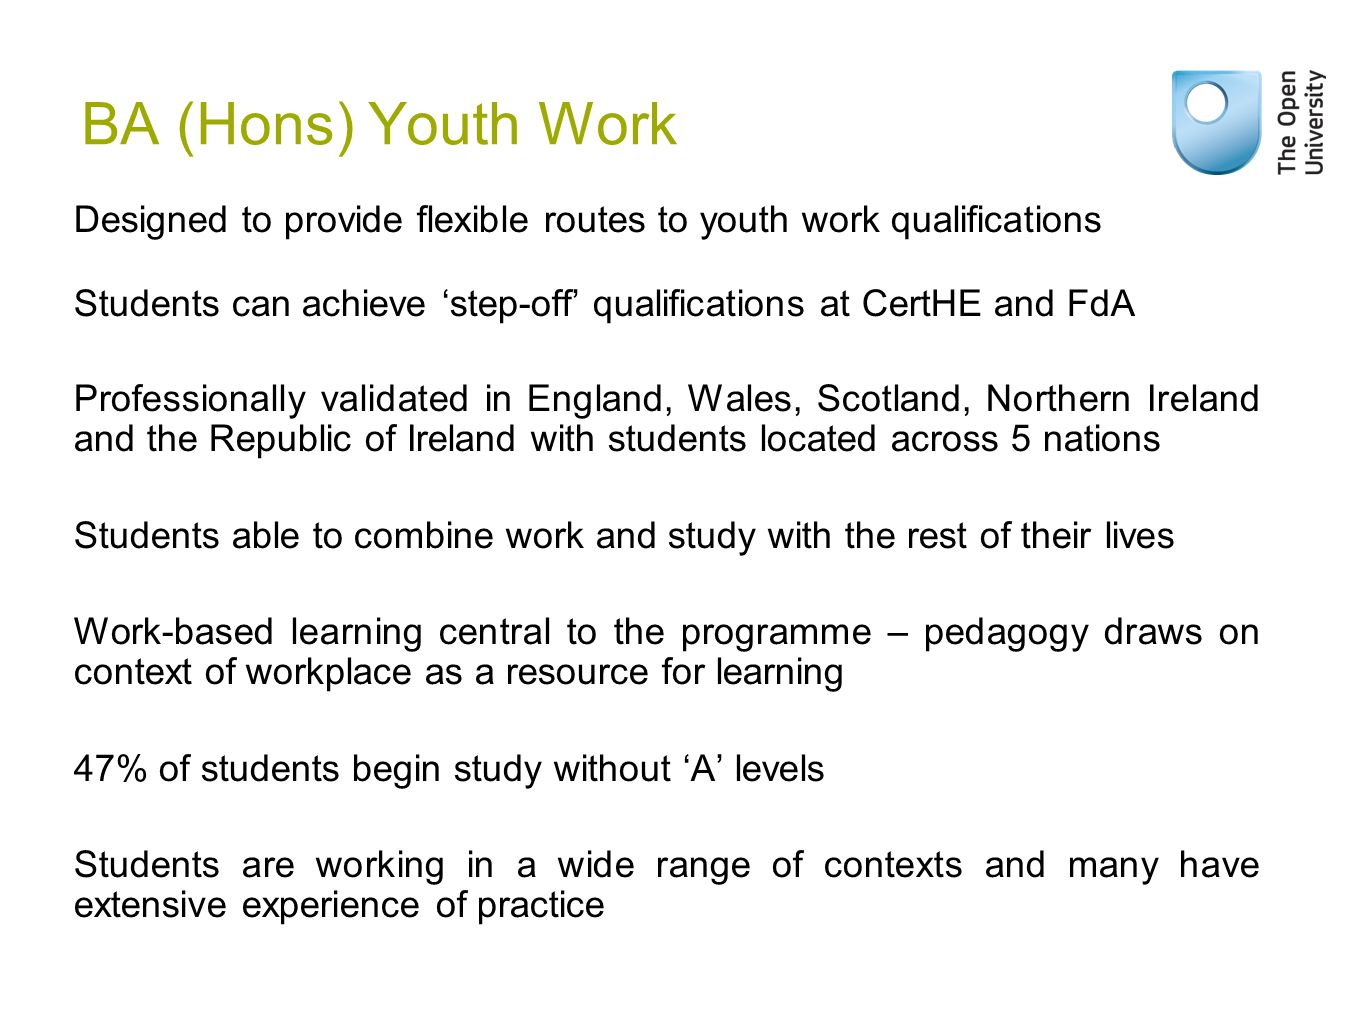 BA (Hons) Youth Work Designed to provide flexible routes to youth work qualifications Students can achieve 'step-off' qualifications at CertHE and FdA Professionally validated in England, Wales, Scotland, Northern Ireland and the Republic of Ireland with students located across 5 nations Students able to combine work and study with the rest of their lives Work-based learning central to the programme – pedagogy draws on context of workplace as a resource for learning 47% of students begin study without 'A' levels Students are working in a wide range of contexts and many have extensive experience of practice